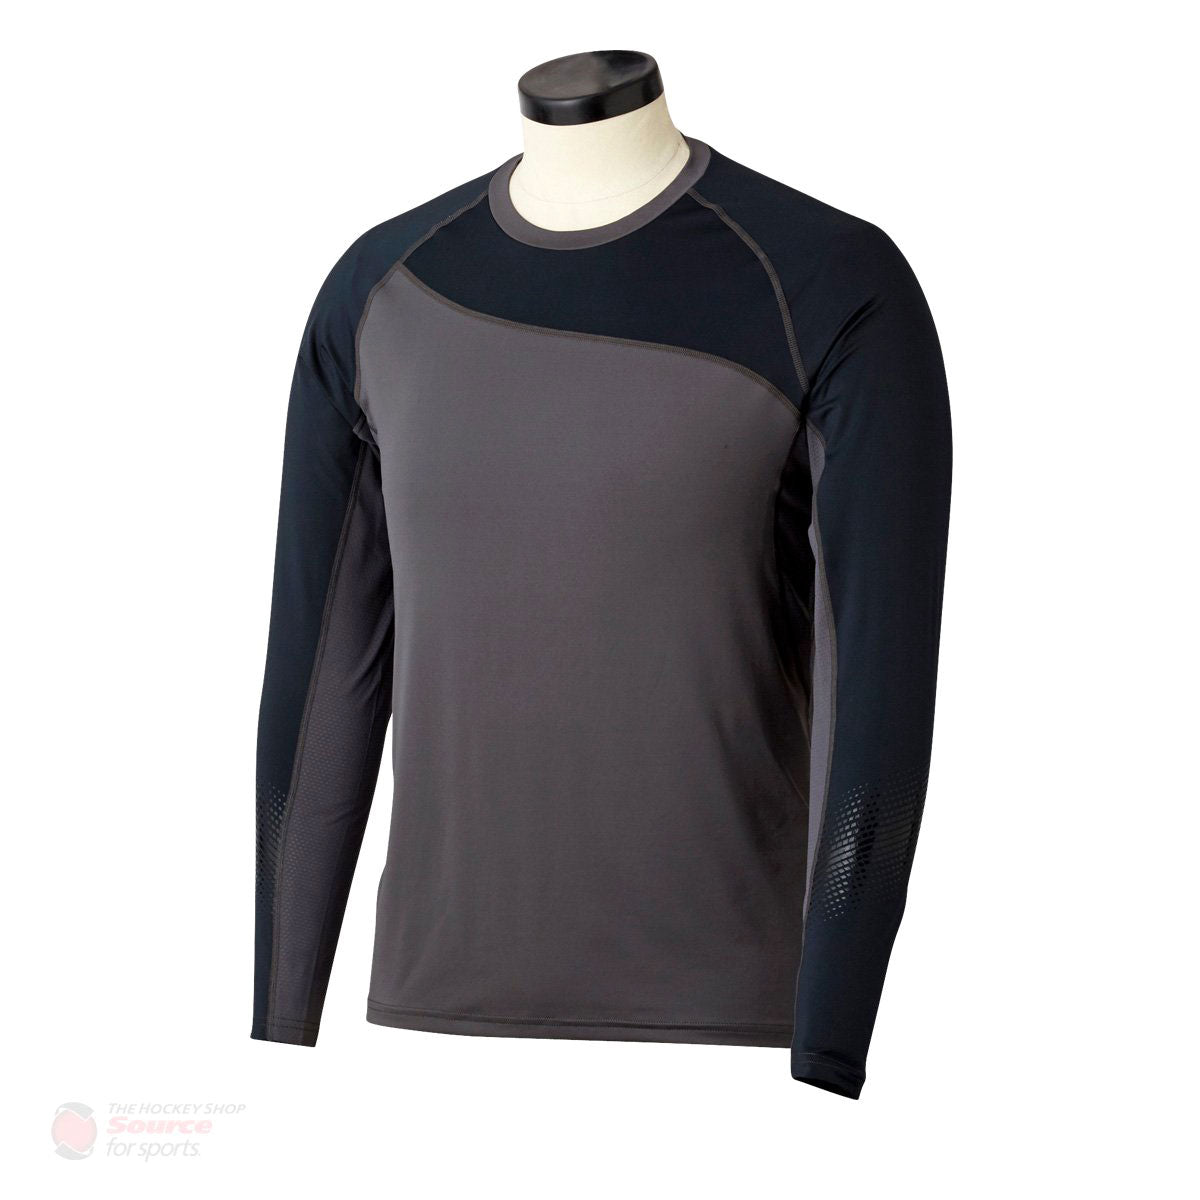 Bauer Pro Grip Longsleeve Junior Baselayer Shirt